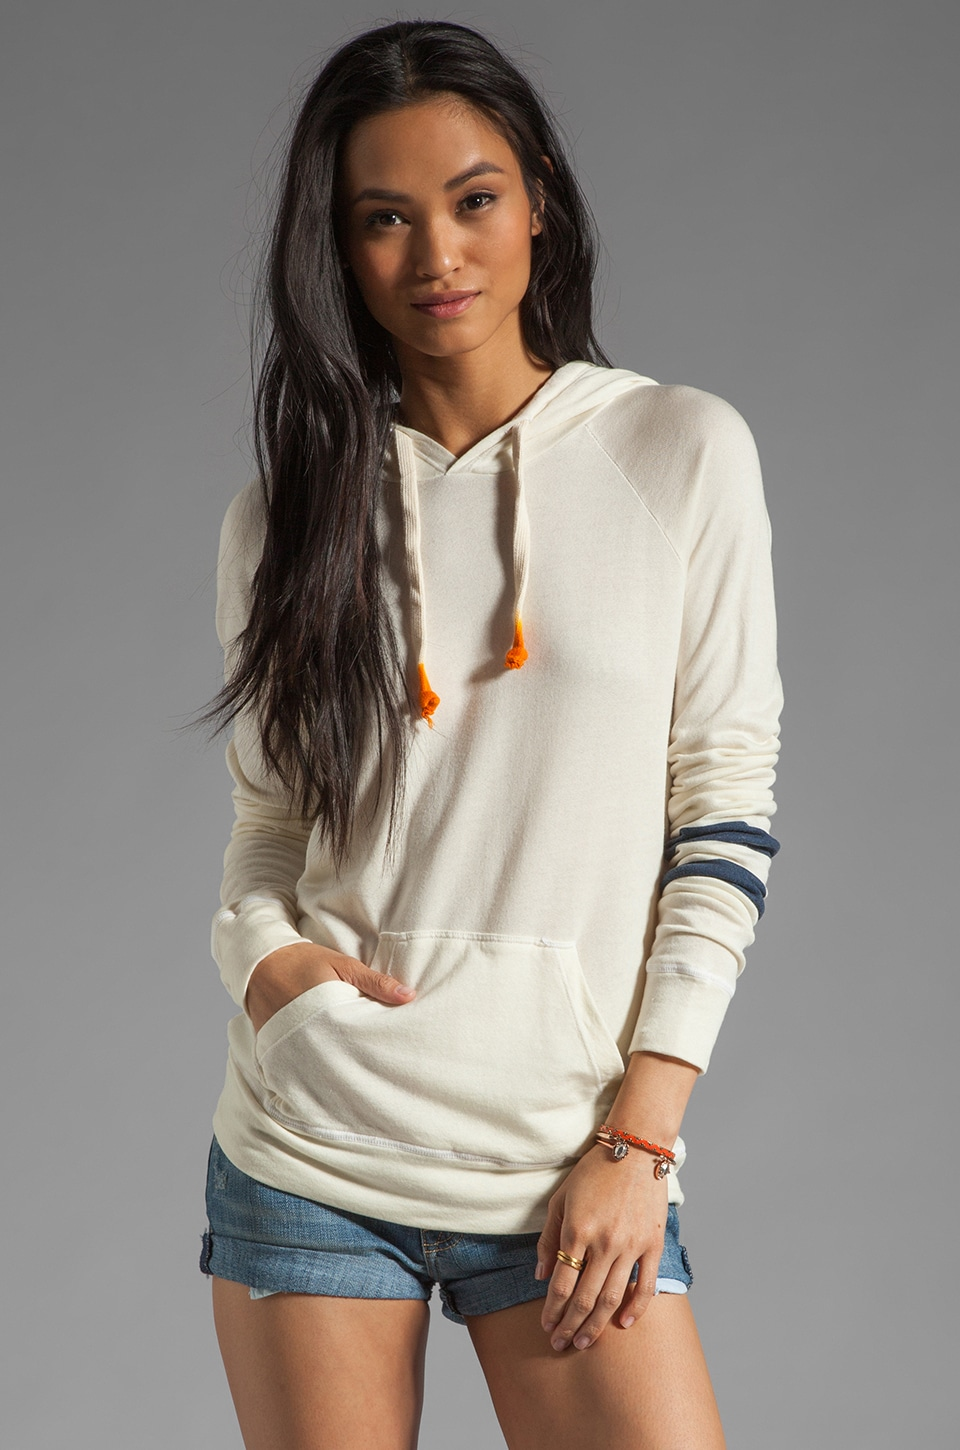 SUNDRY Stripes Pullover Hoodie in Sea Shell